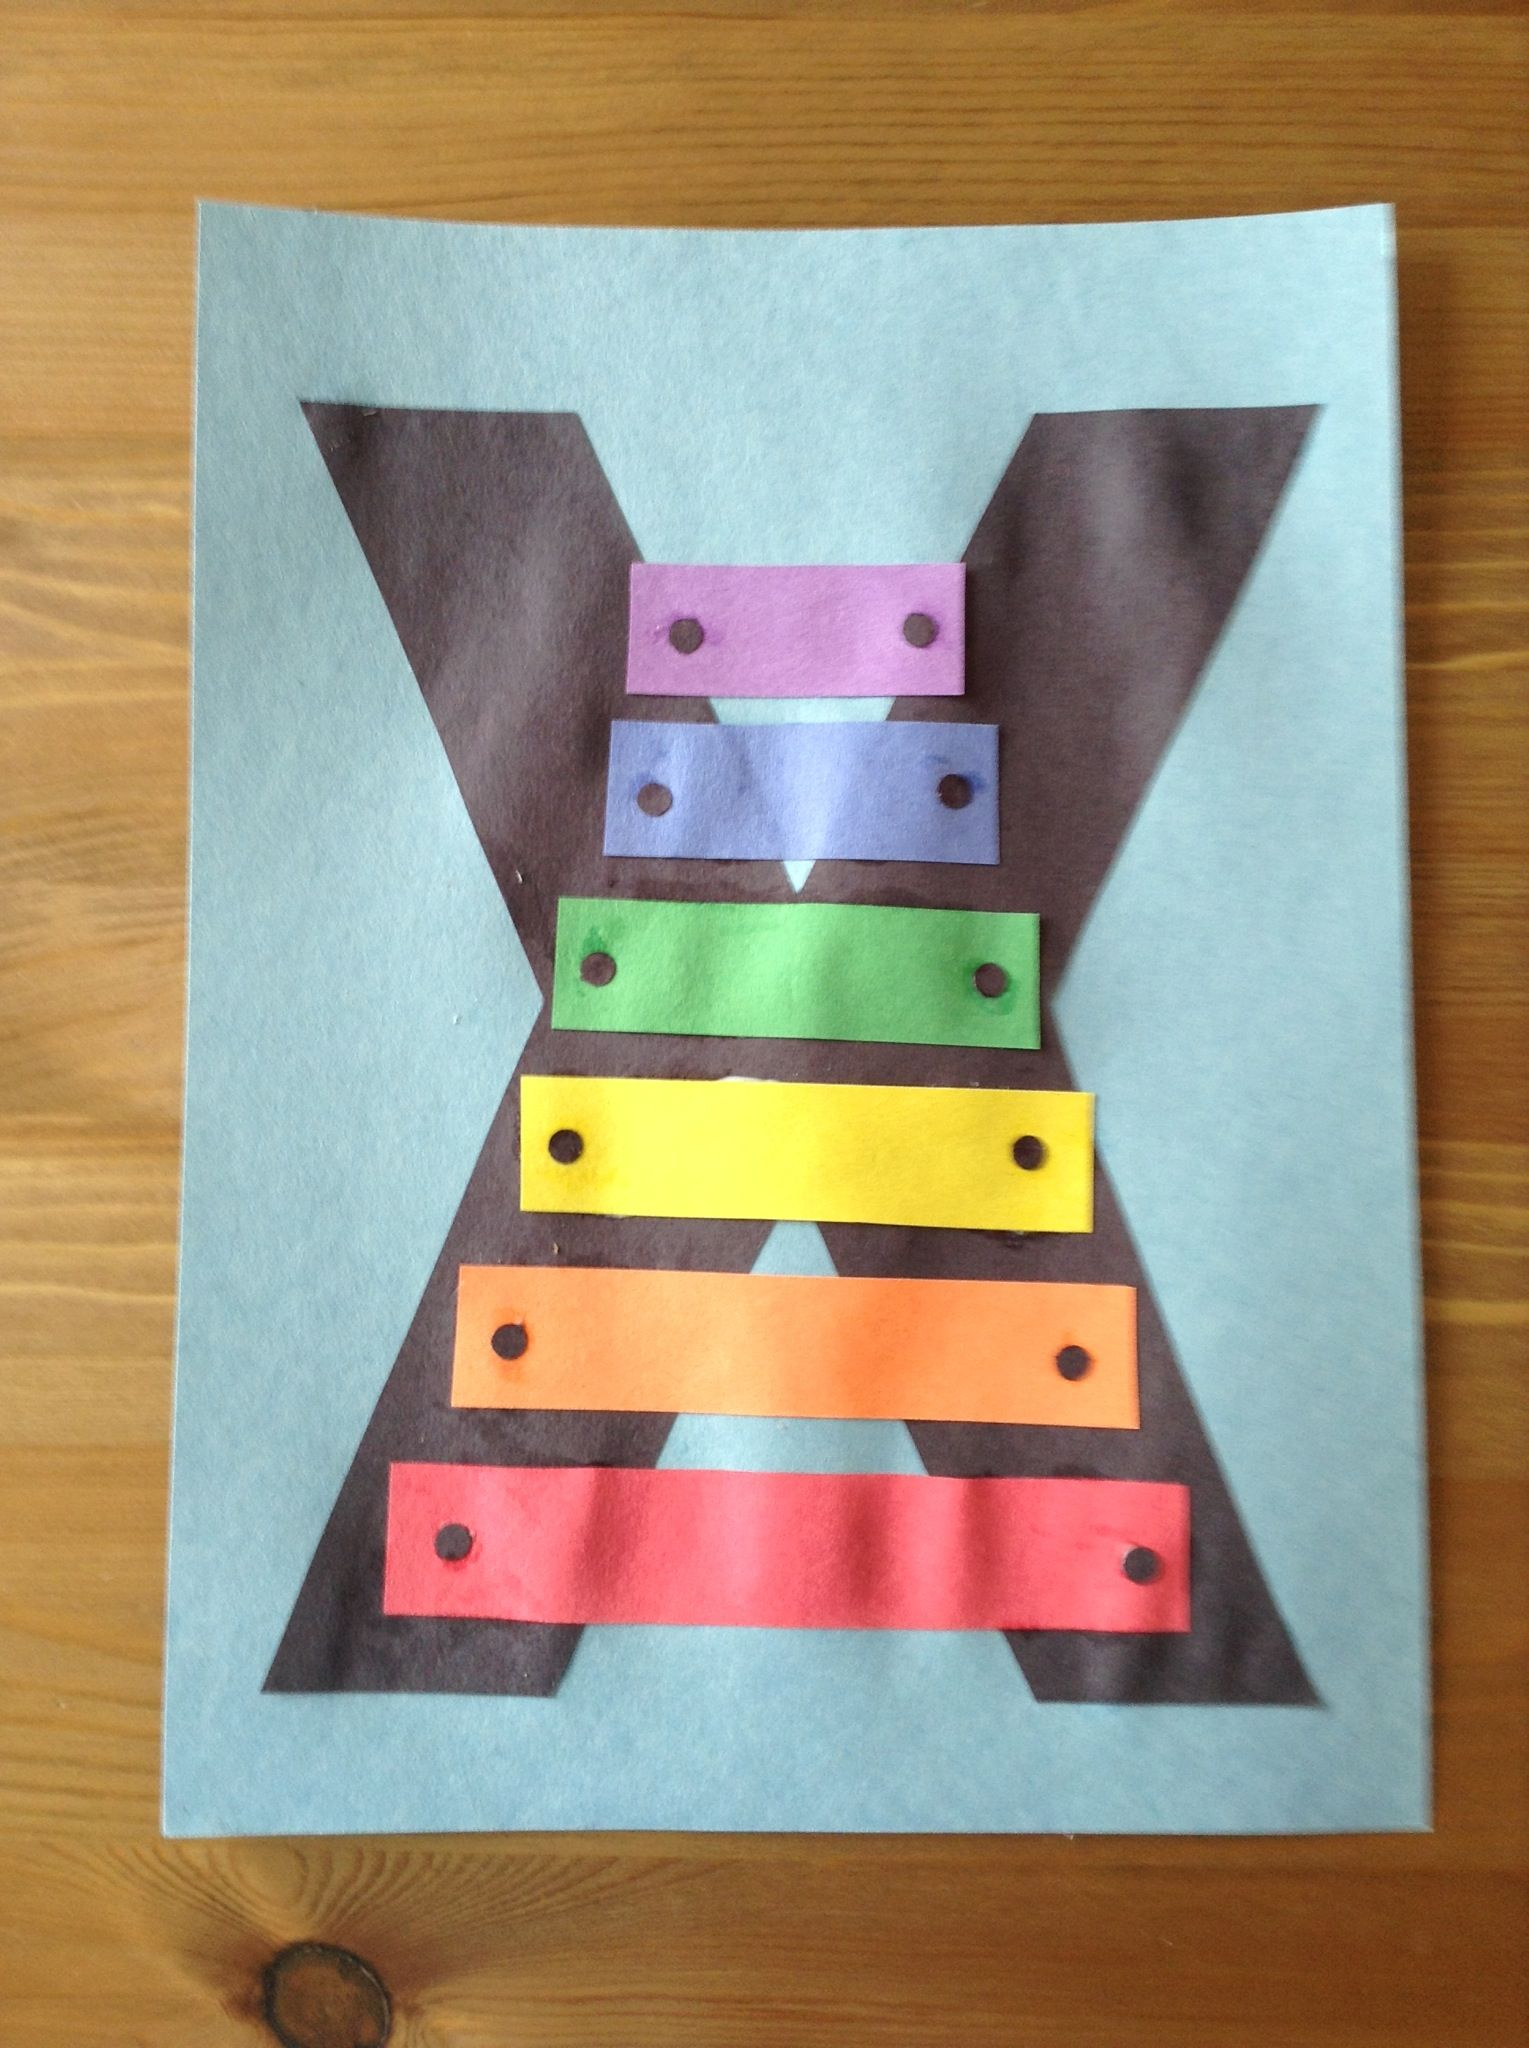 Letter s arts and crafts for preschoolers - X Is For Xylophone Craft Preschool Craft Letter Of The Week Craft Kids